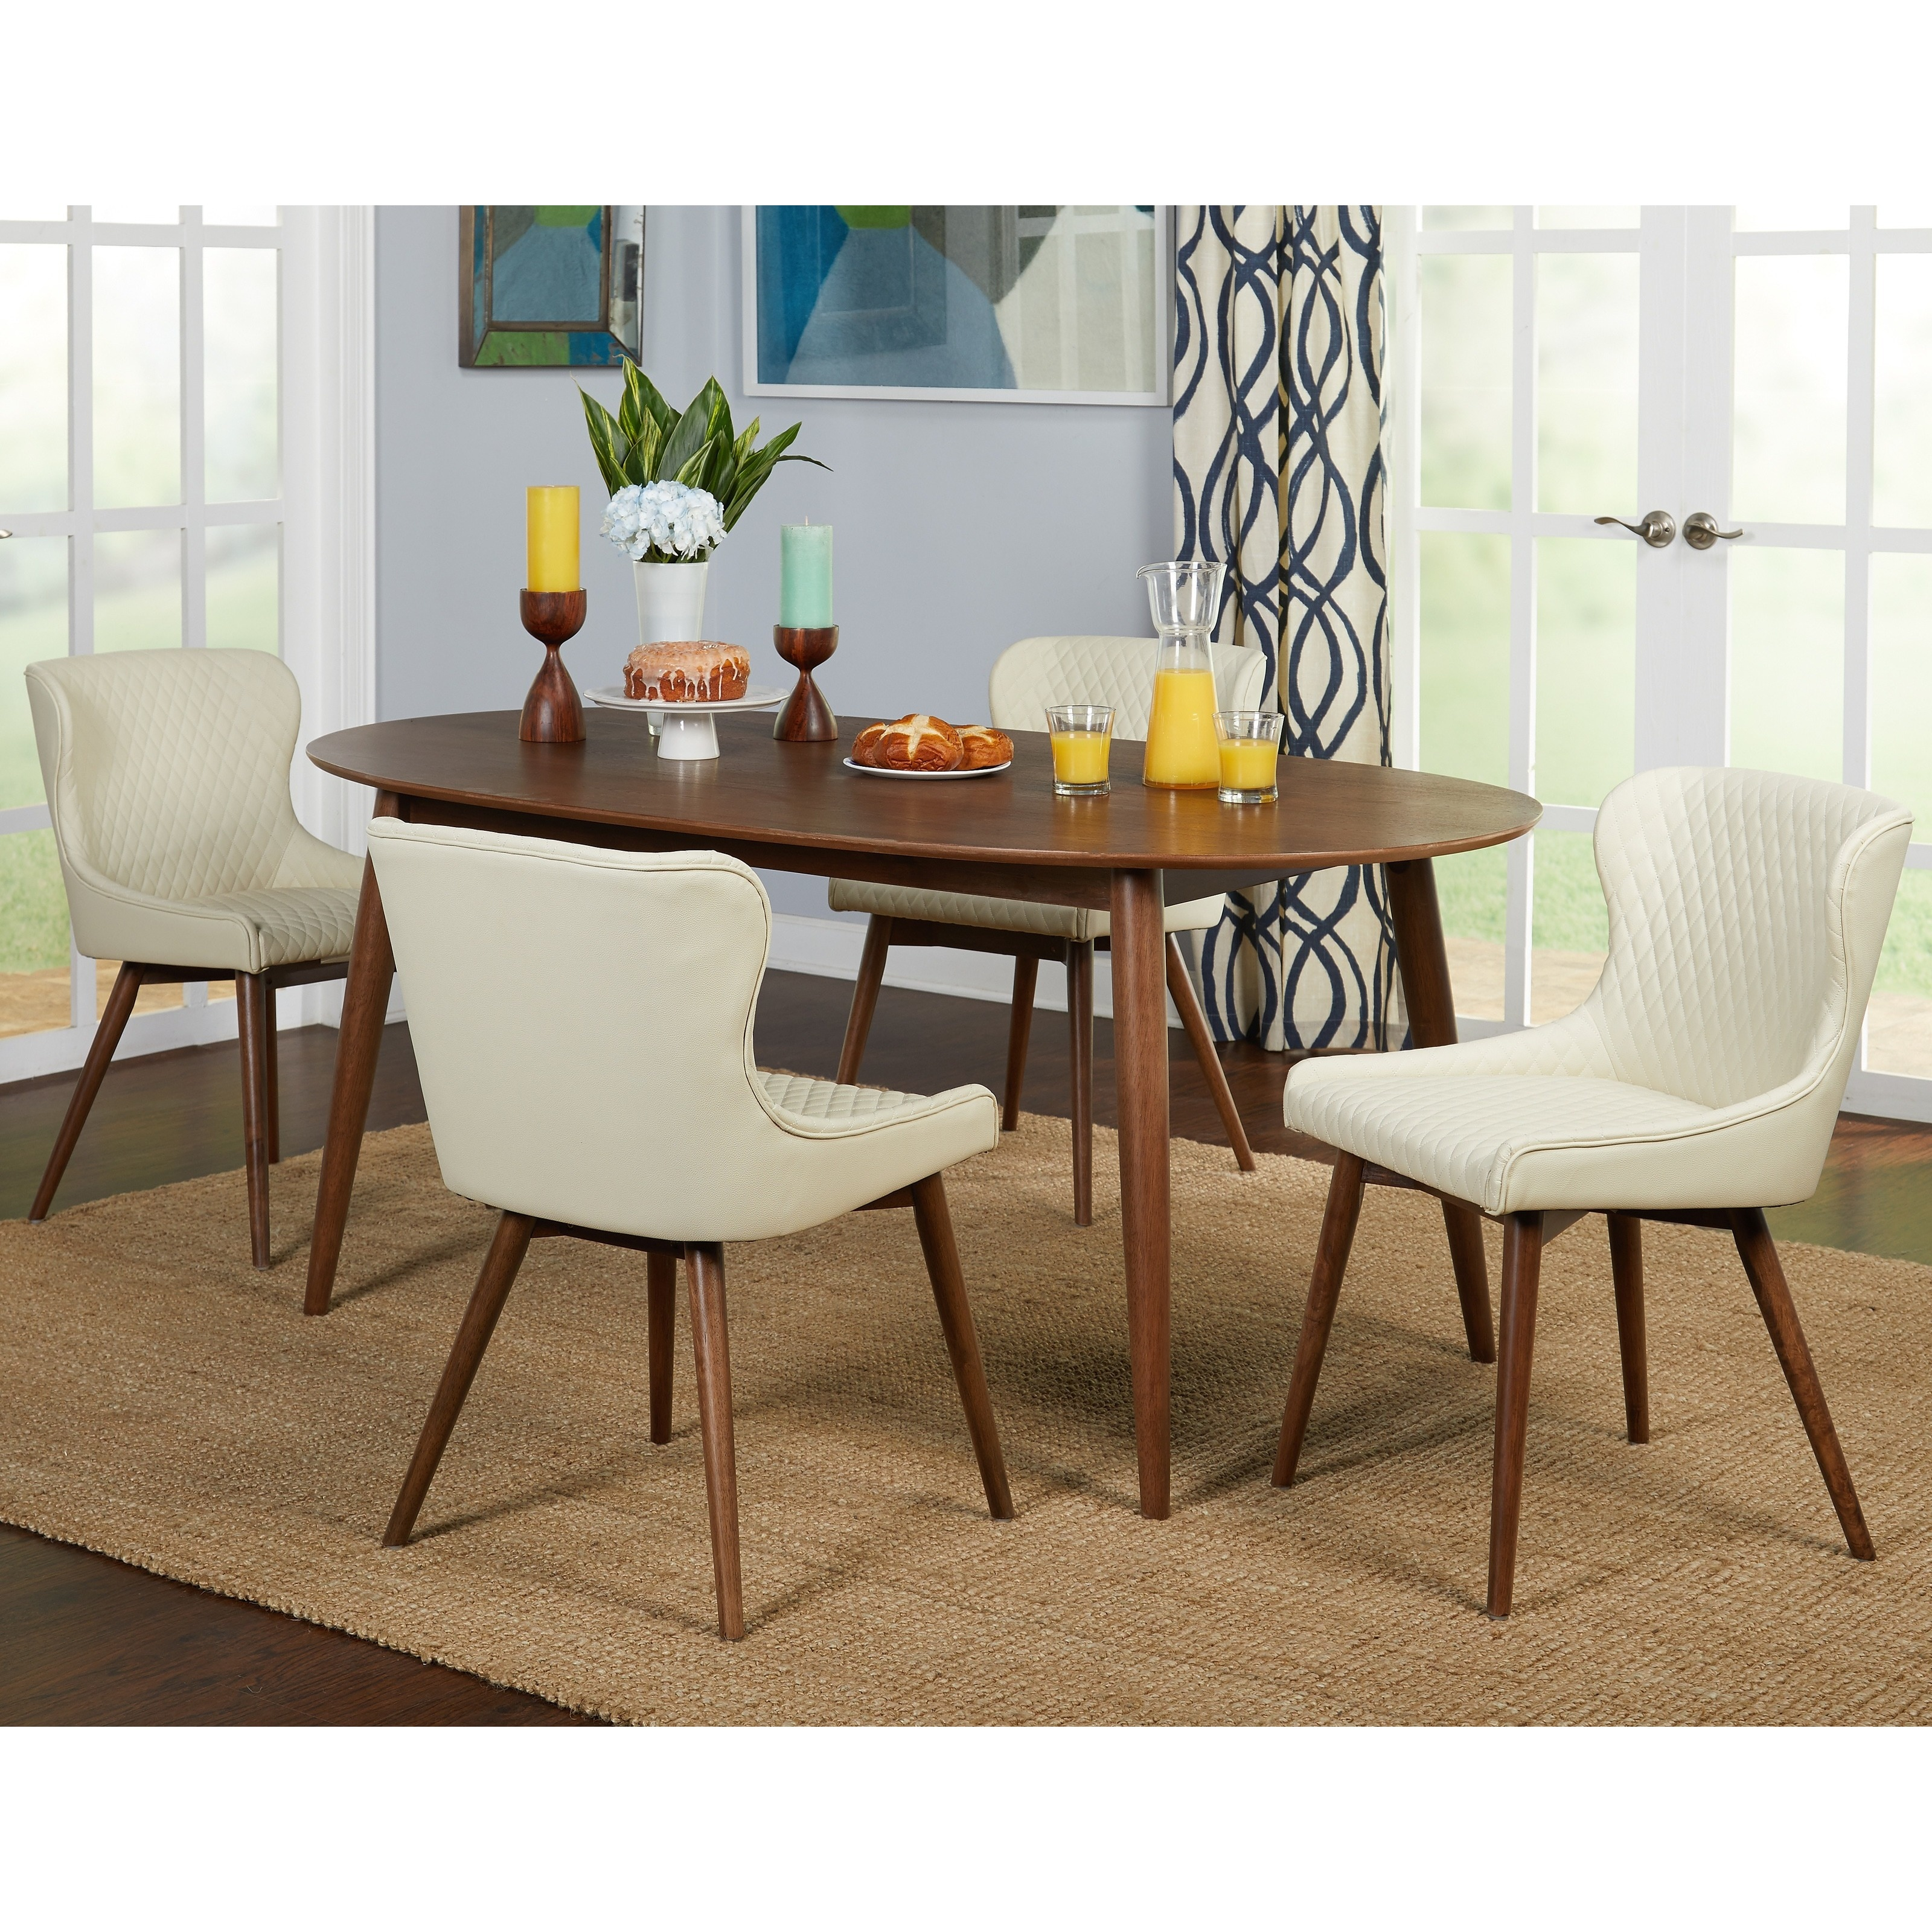 Modern Contemporary Kitchen Dining Room Tables For Less